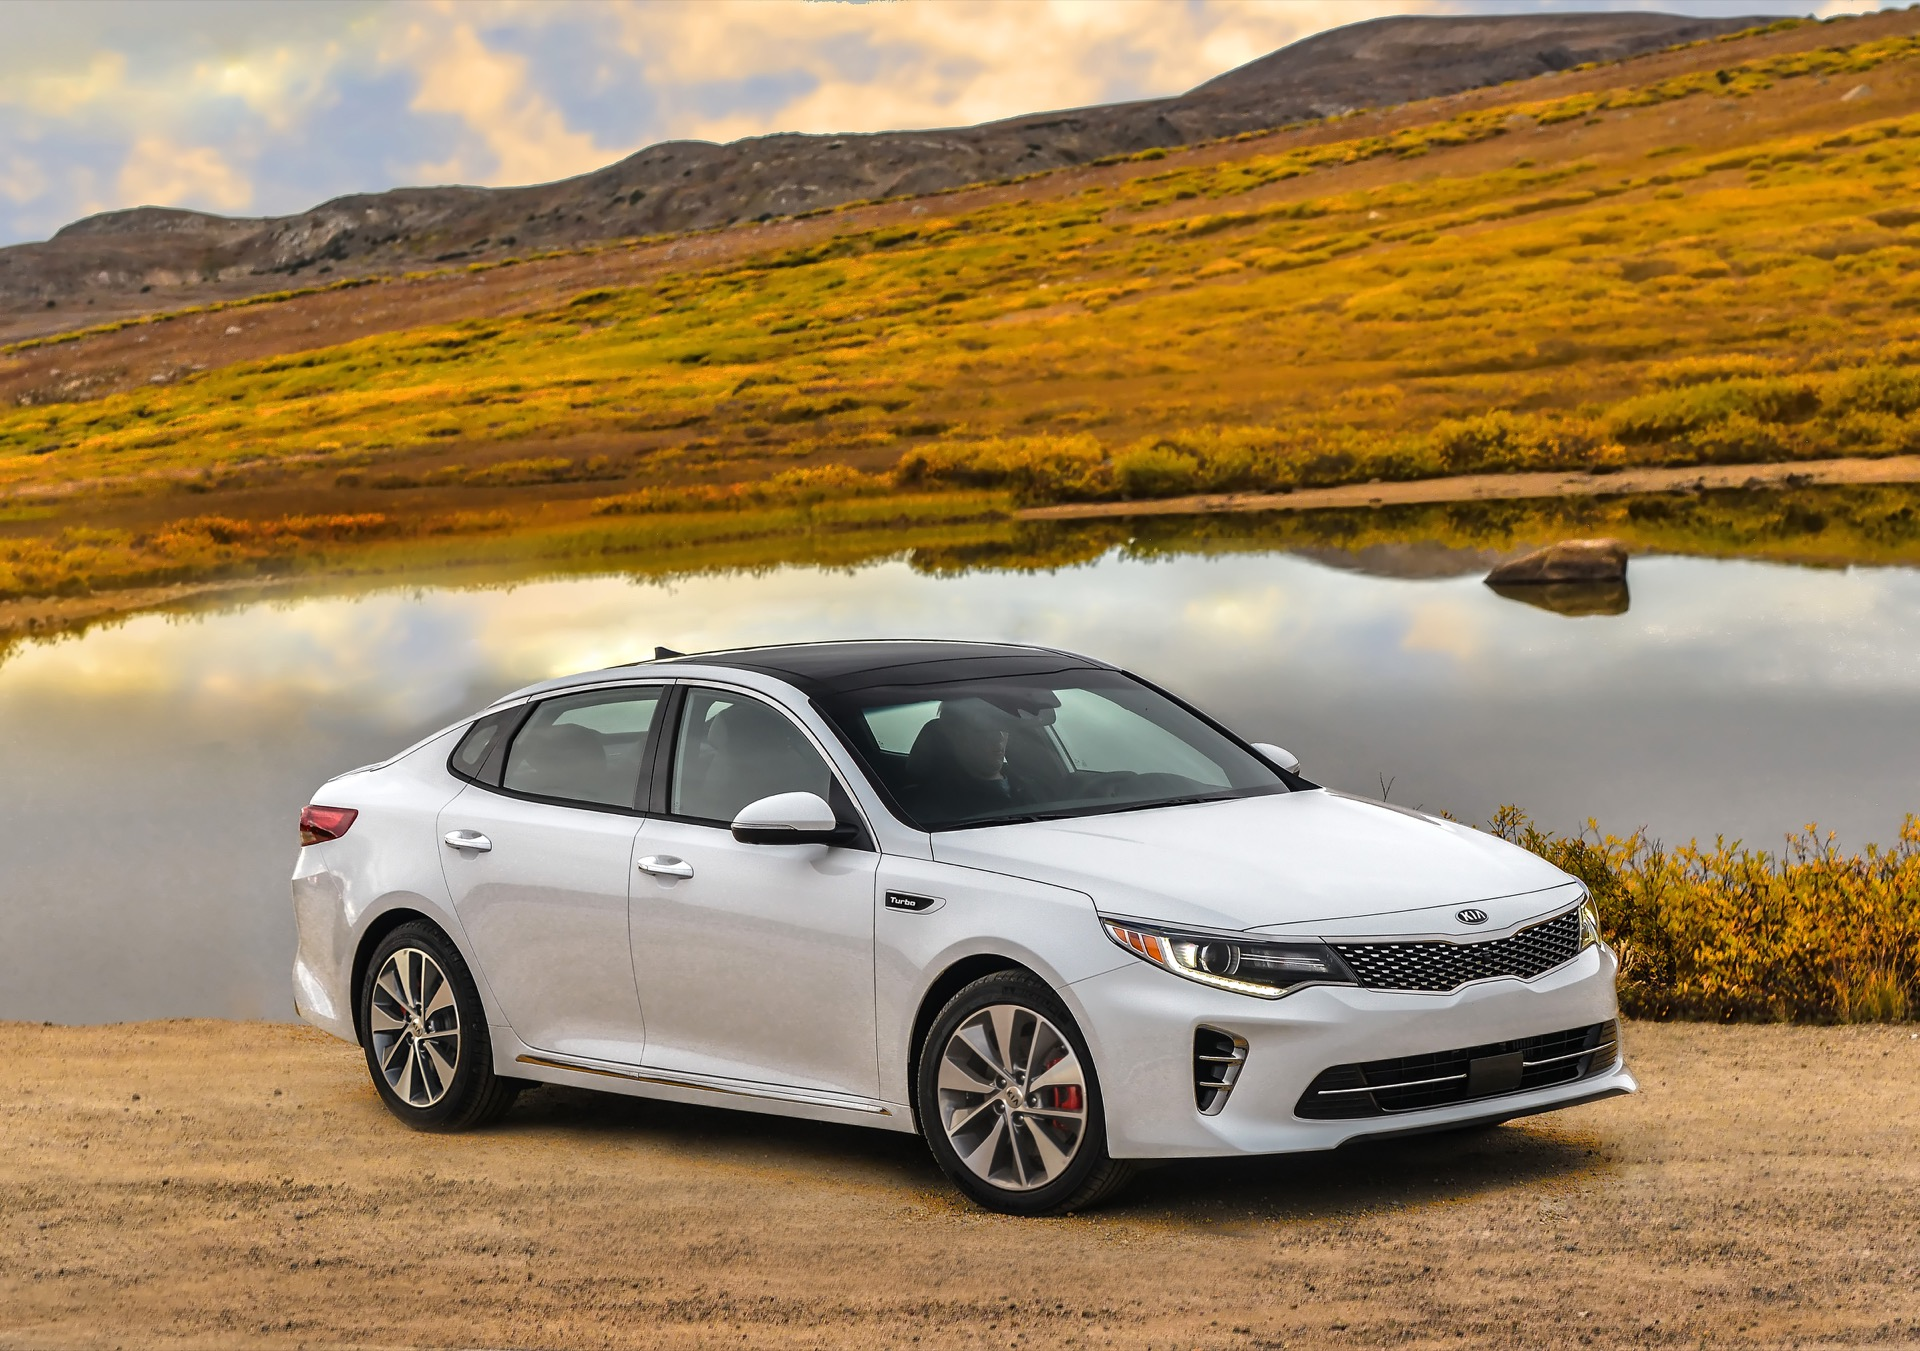 Used Kia Optima For Sale >> 2016 Kia Optima Review, Ratings, Specs, Prices, and Photos ...